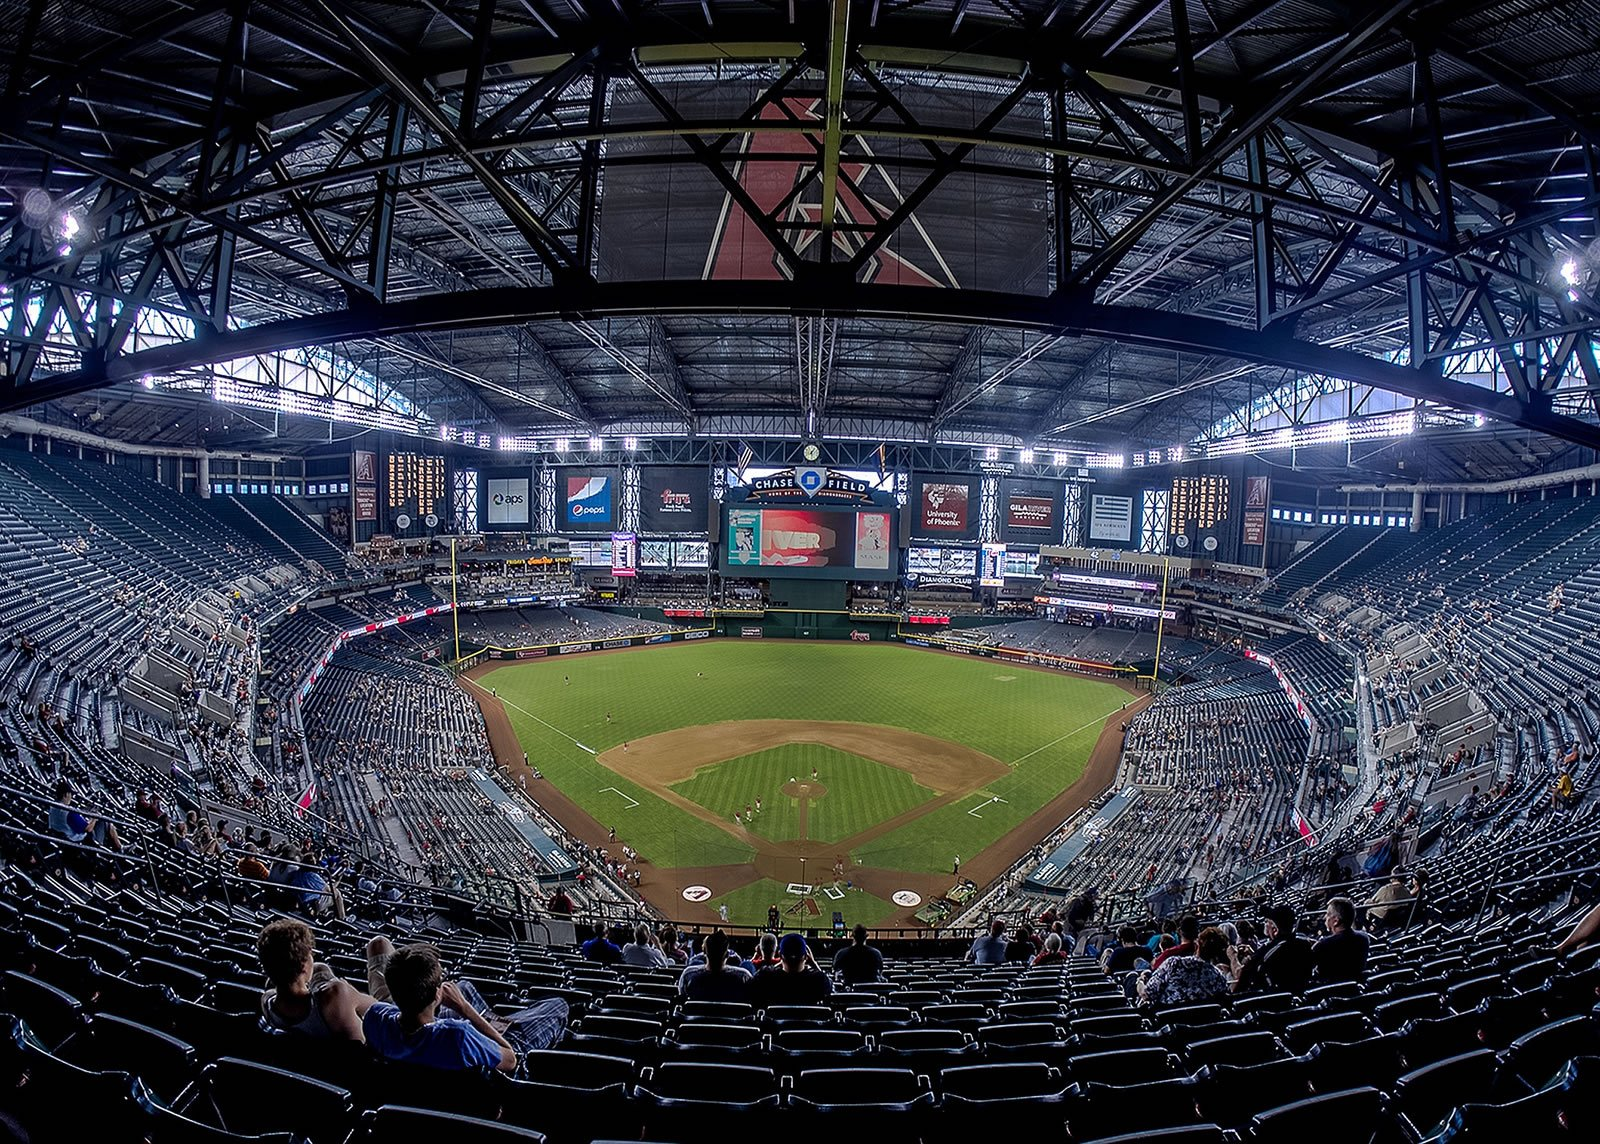 Seating Style in Section 316 at Chase Field